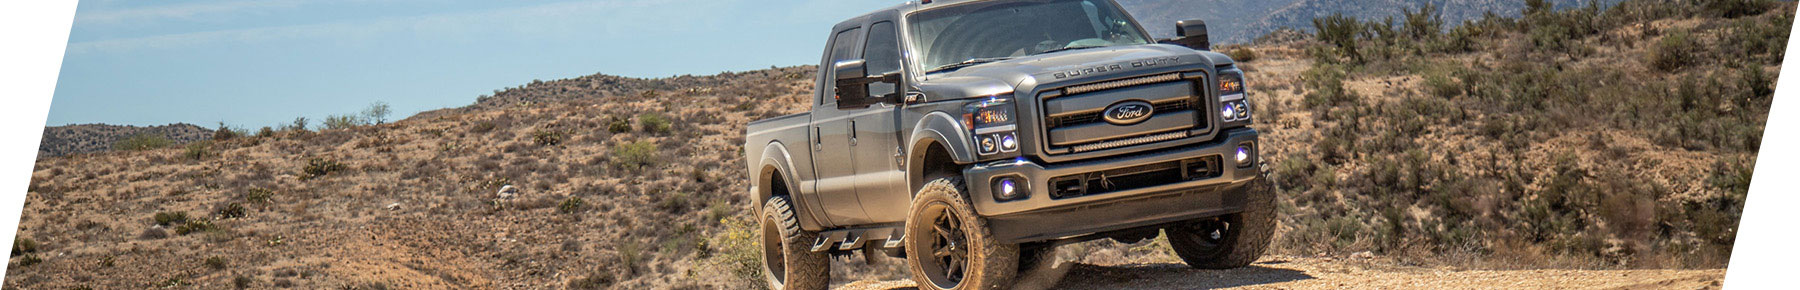 2011-2016 F250 & F350 6.7L Performance Parts & Accessories